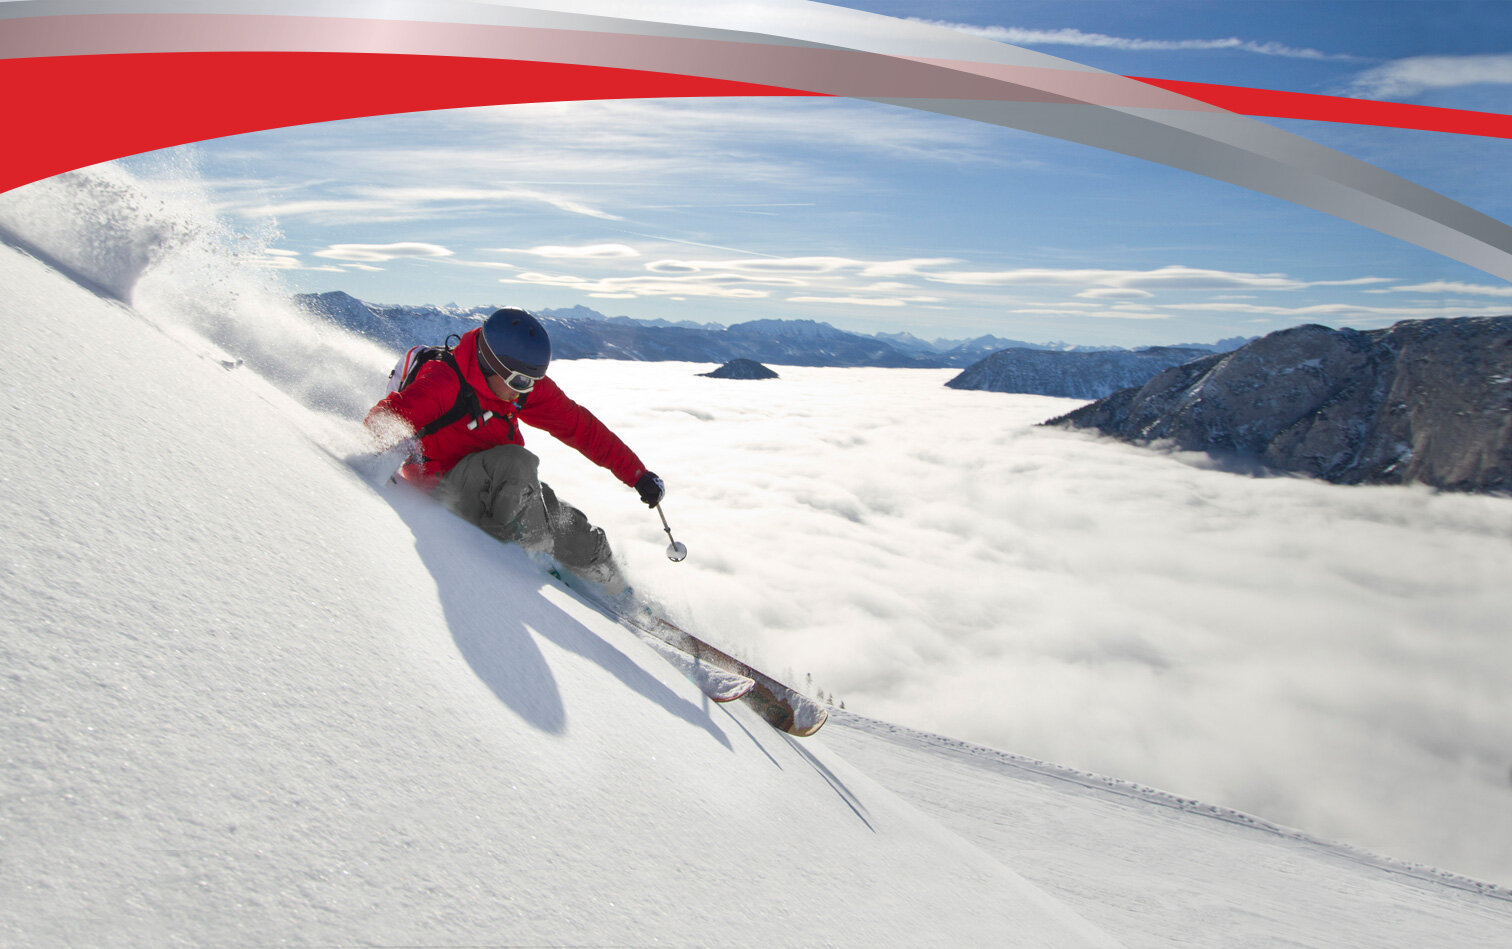 EXPECT EXTRAORDINARY - Dramatically improve your skiing with the #1 Technical Ski Conditioner in the World!